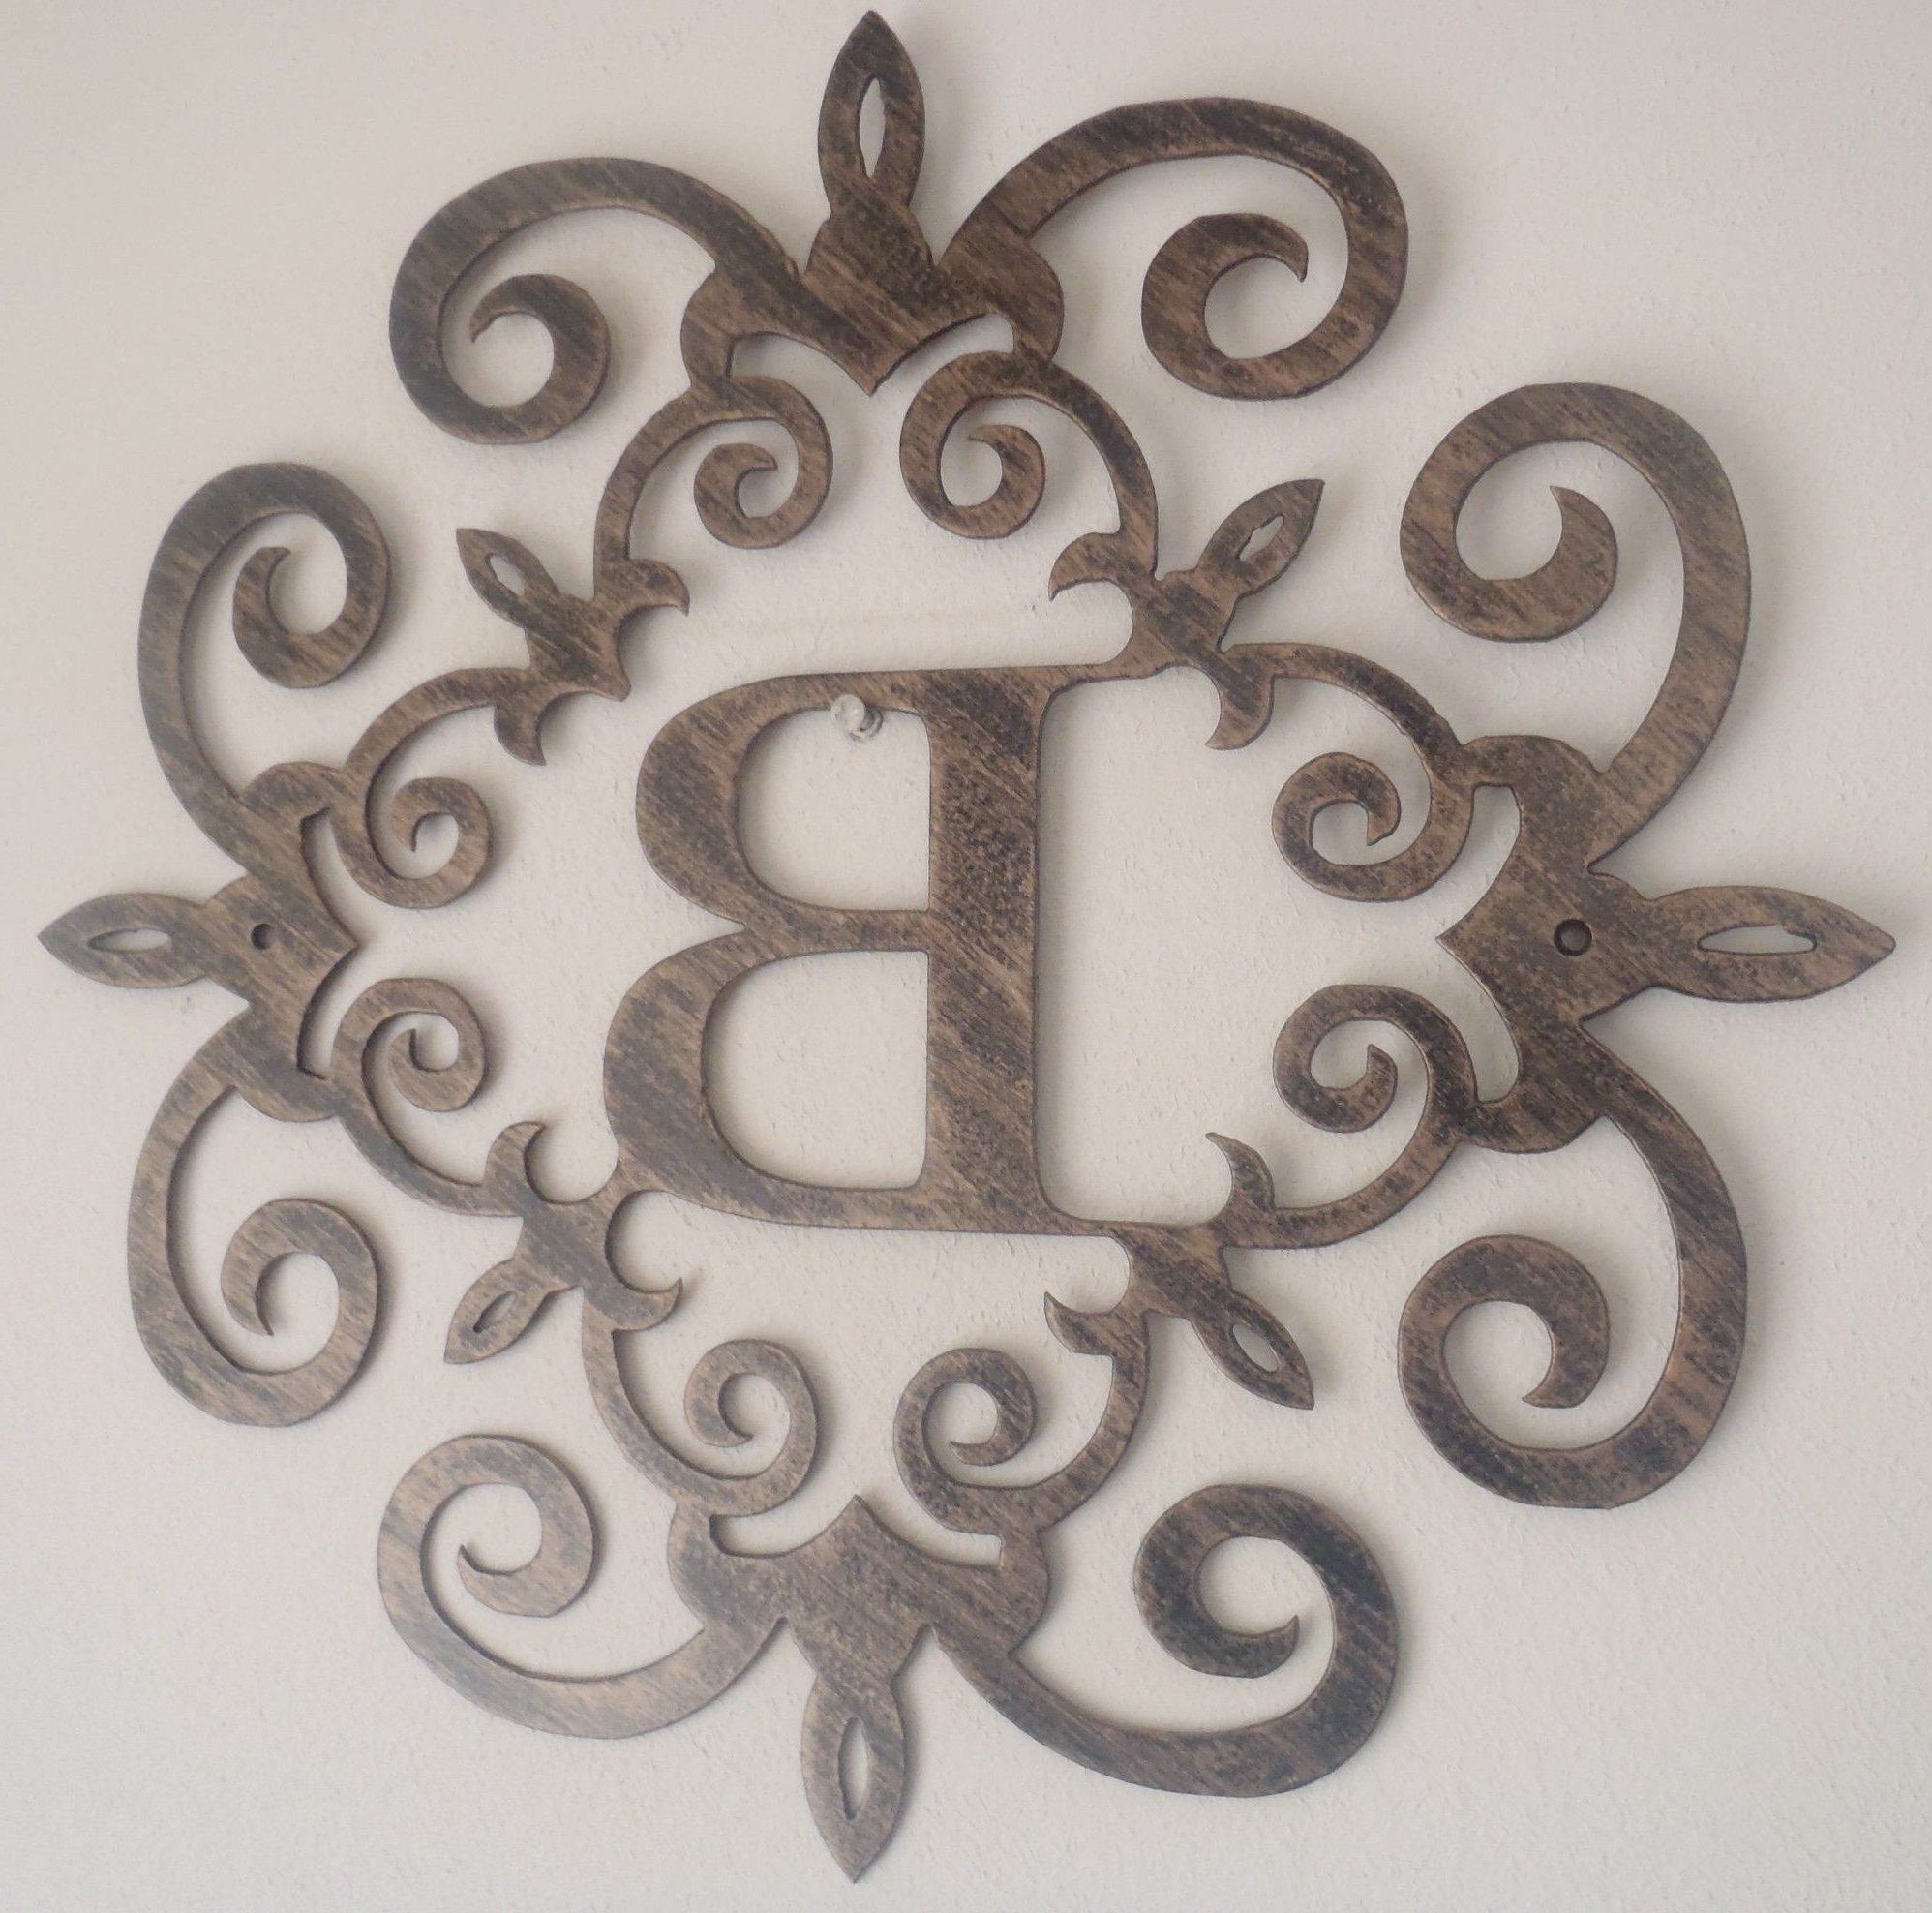 Letter Wall Art Regarding Well Known Unique Large Monogram Letters Wall Decor (View 6 of 15)